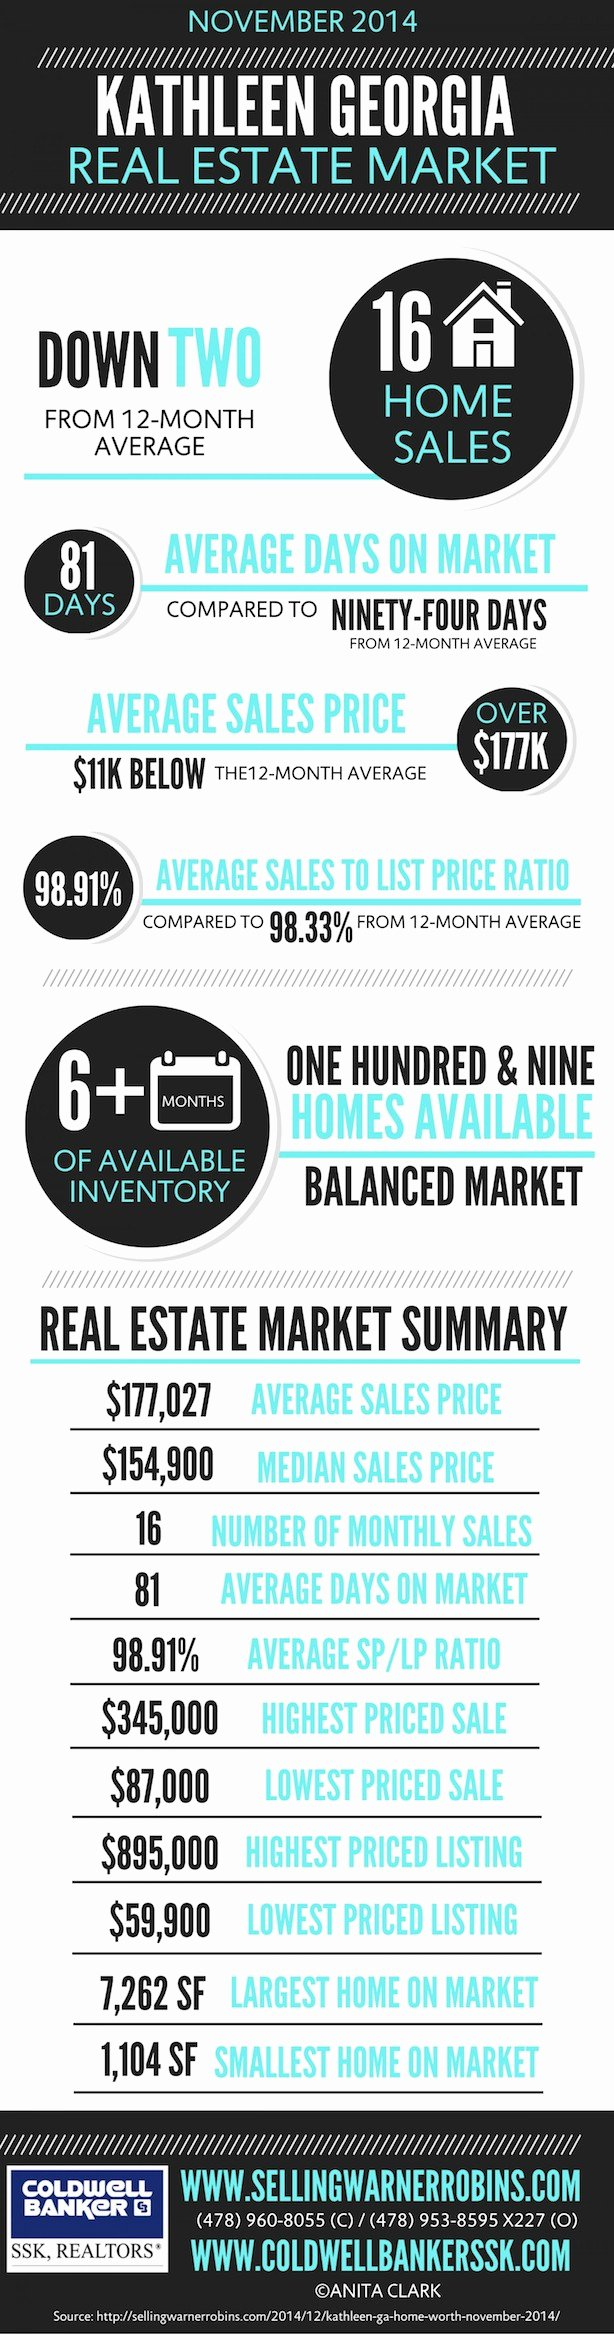 Real Estate Market Update Template Luxury How to Create Real Estate Reports